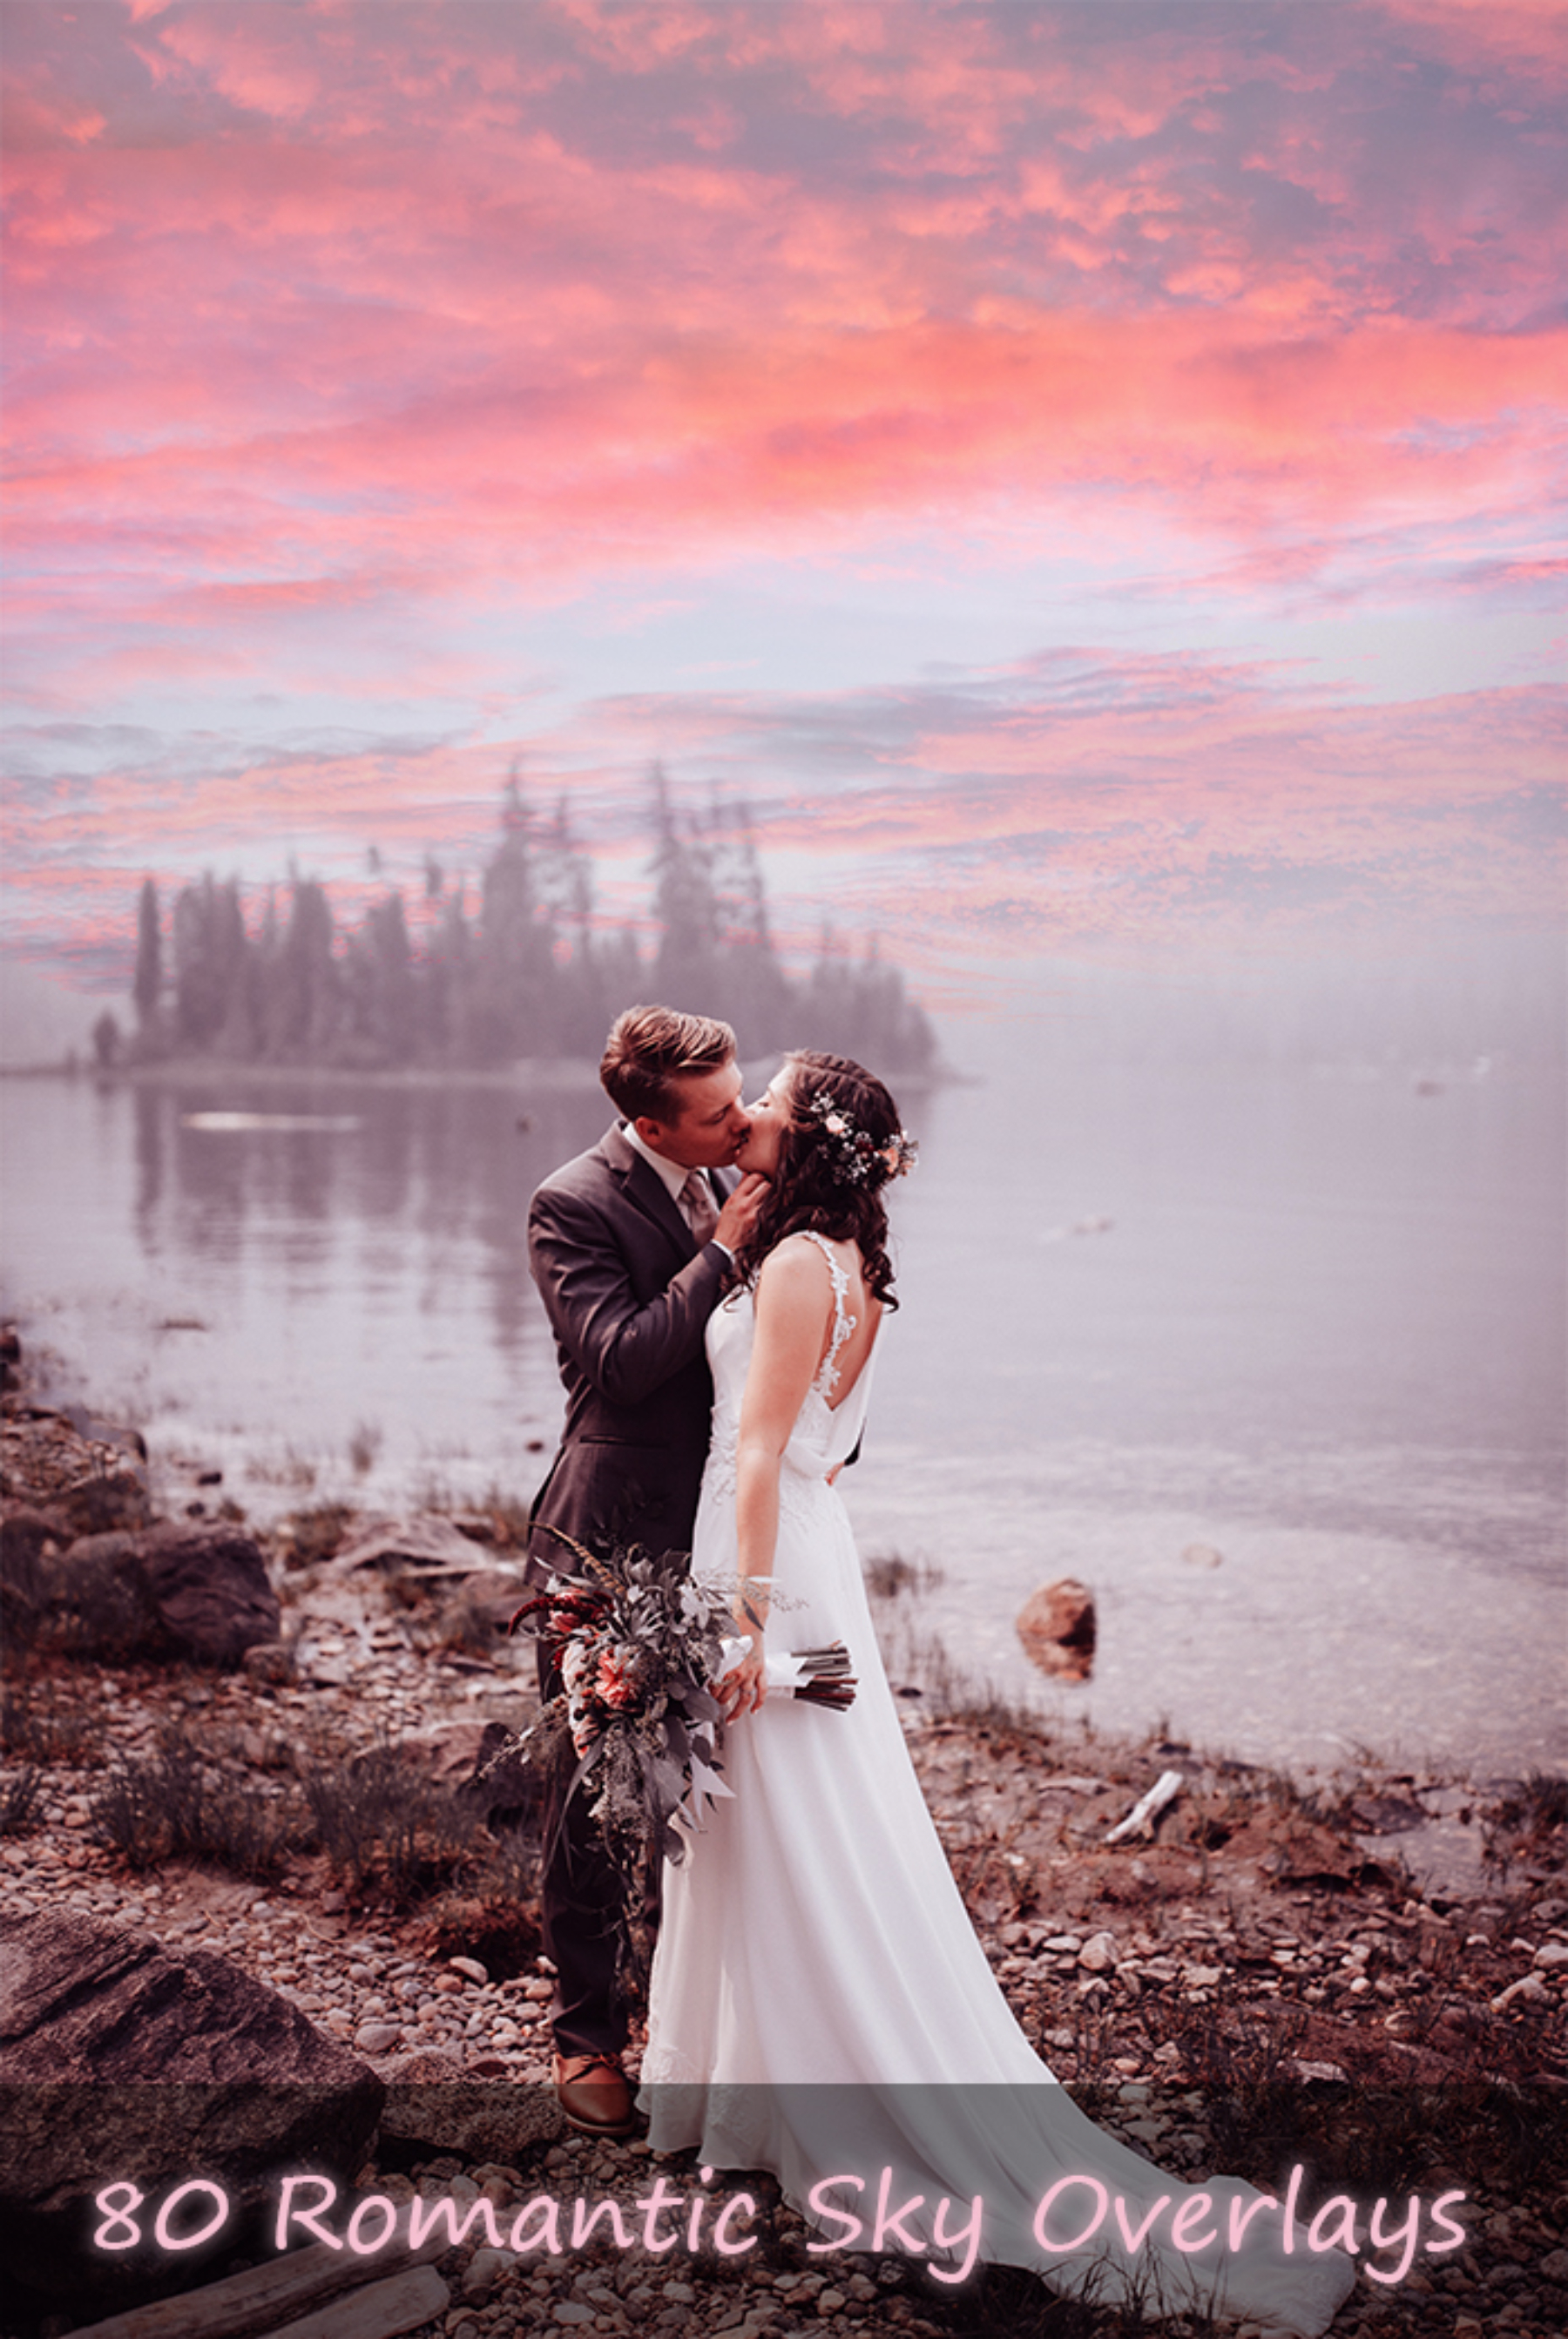 1700 Romantic Effects Bundle for Photographers example image 4